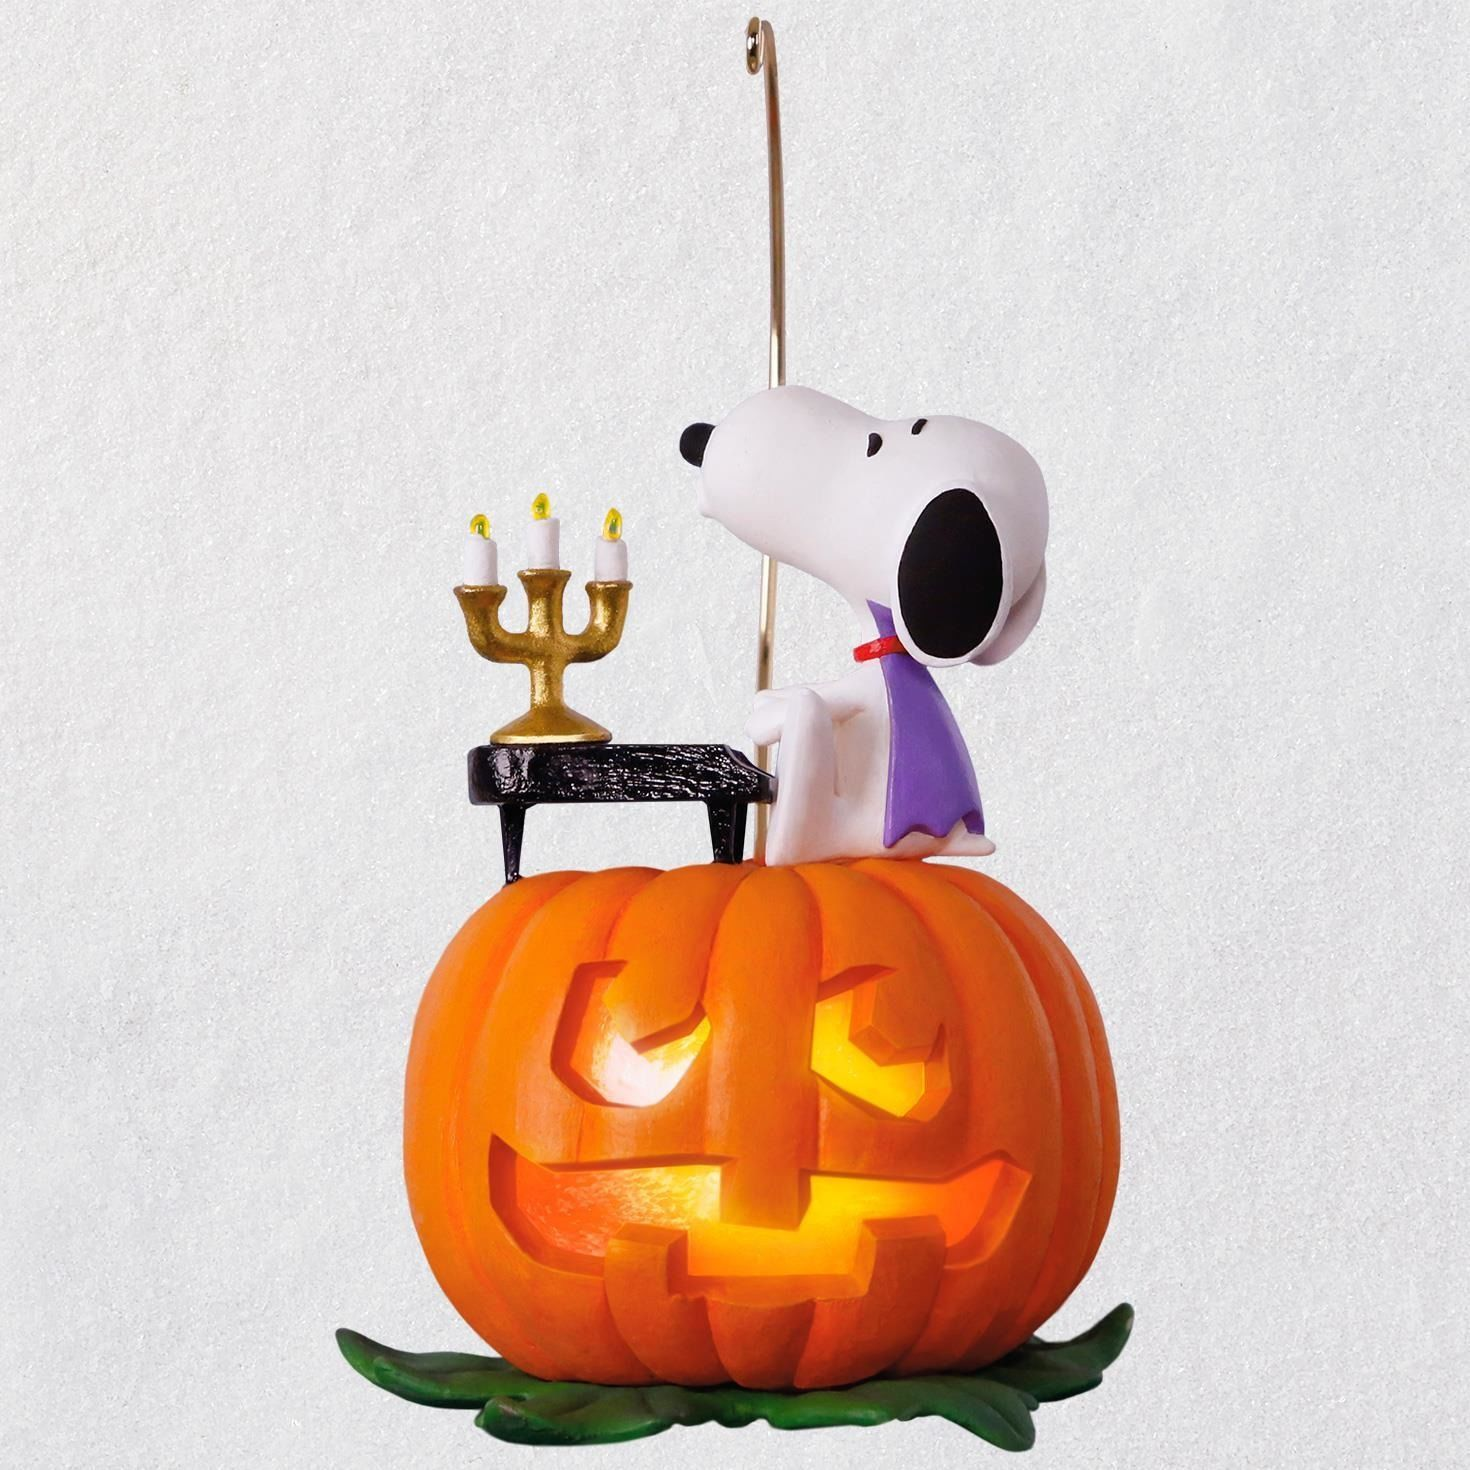 The Peanuts Gang Spooky Snoopy Musical Halloween Ornament with Light